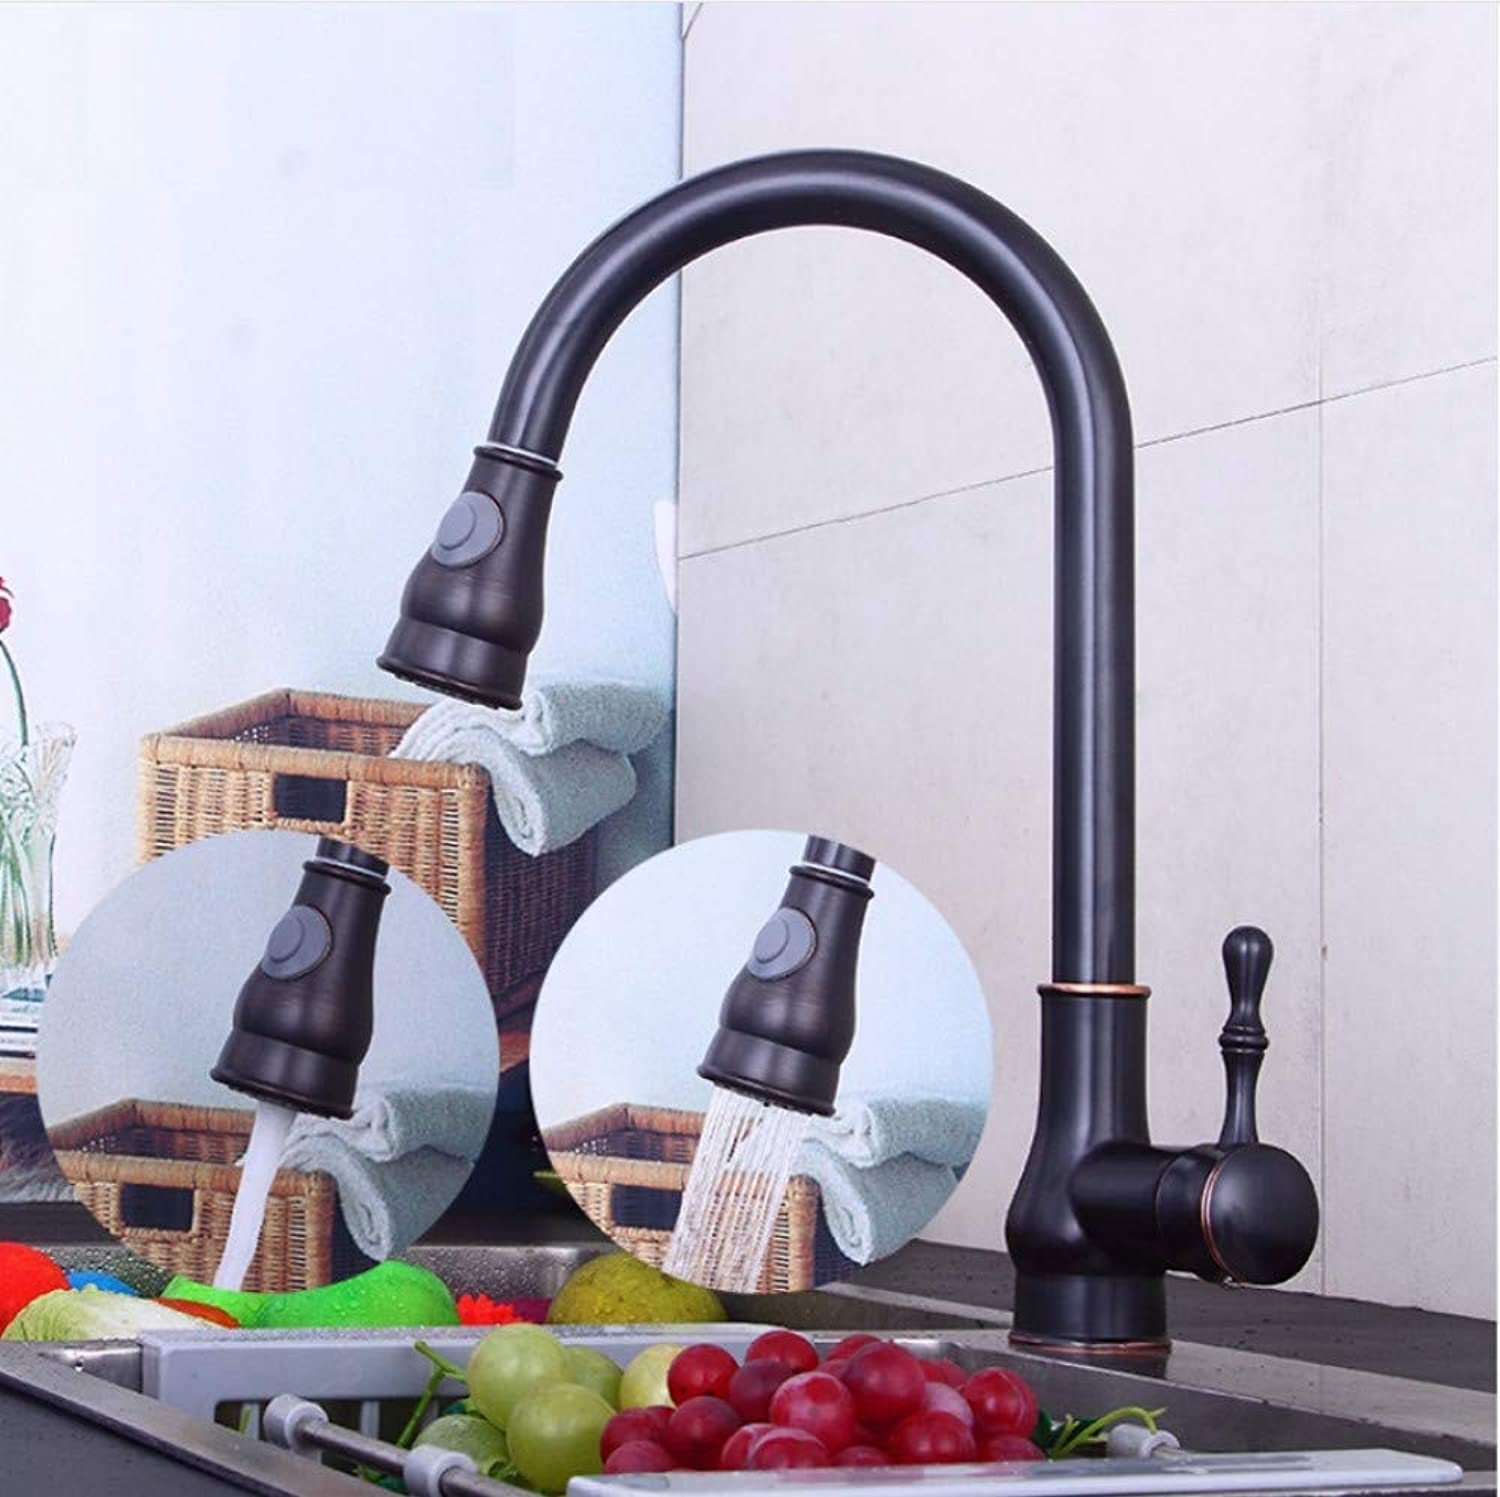 Dwthh Kitchen Faucet Sink Waterfall Faucet Deck Mounted Sink Kitchen Water Tap Mixer Kitchen Drinking Water Faucets